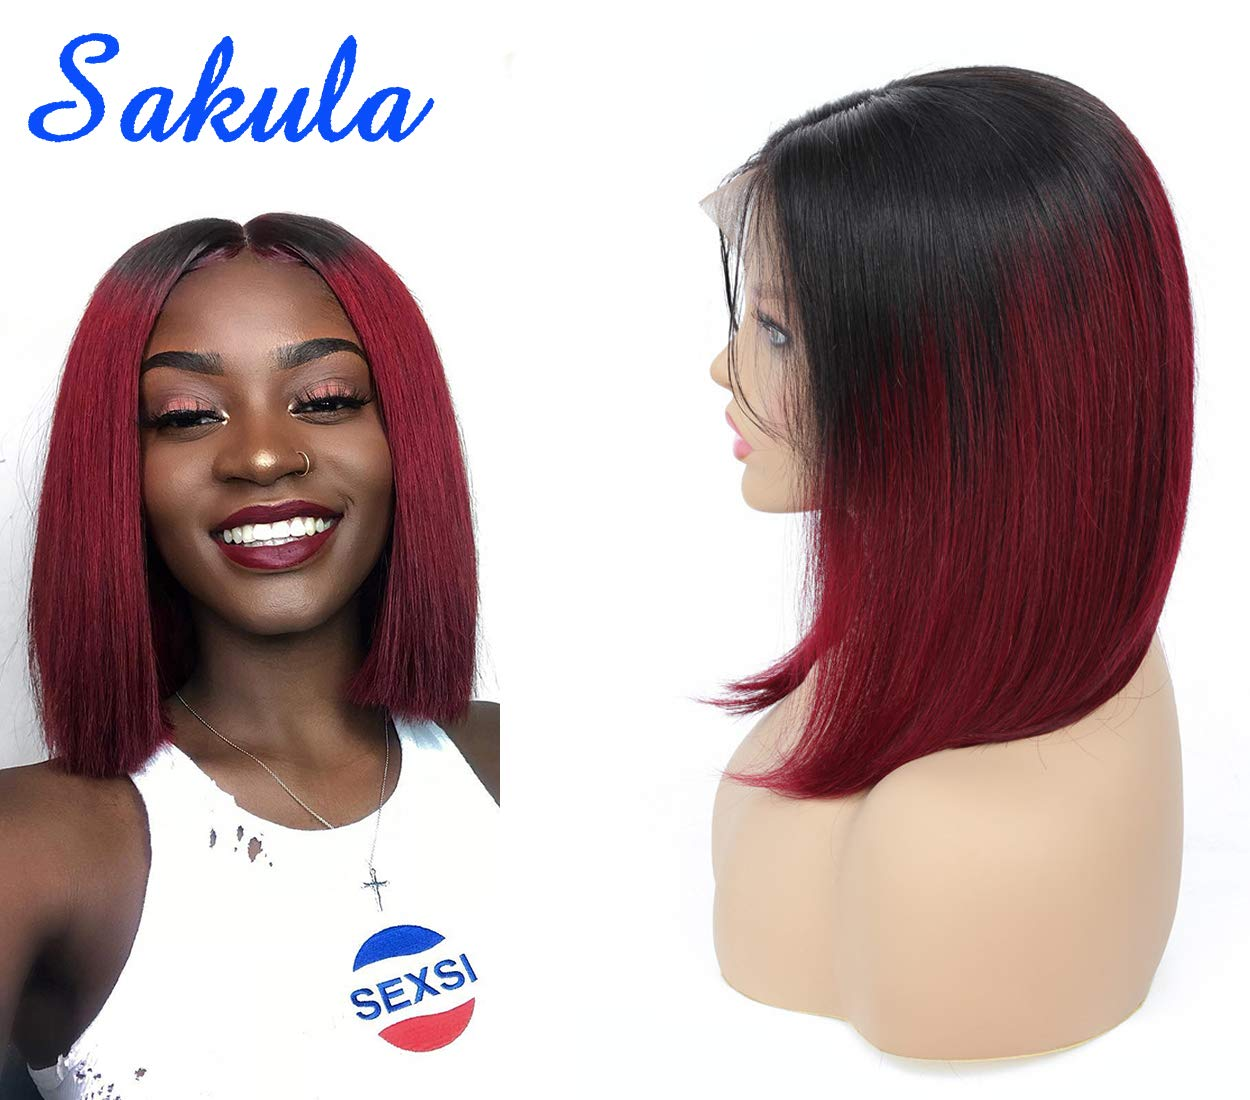 B074BSHZFG Sakula Brazilian Virgin Remy Lace Frontal Bobo Wig with Human Hair 10 Inches 61l5hLwpUuL._SL1250_